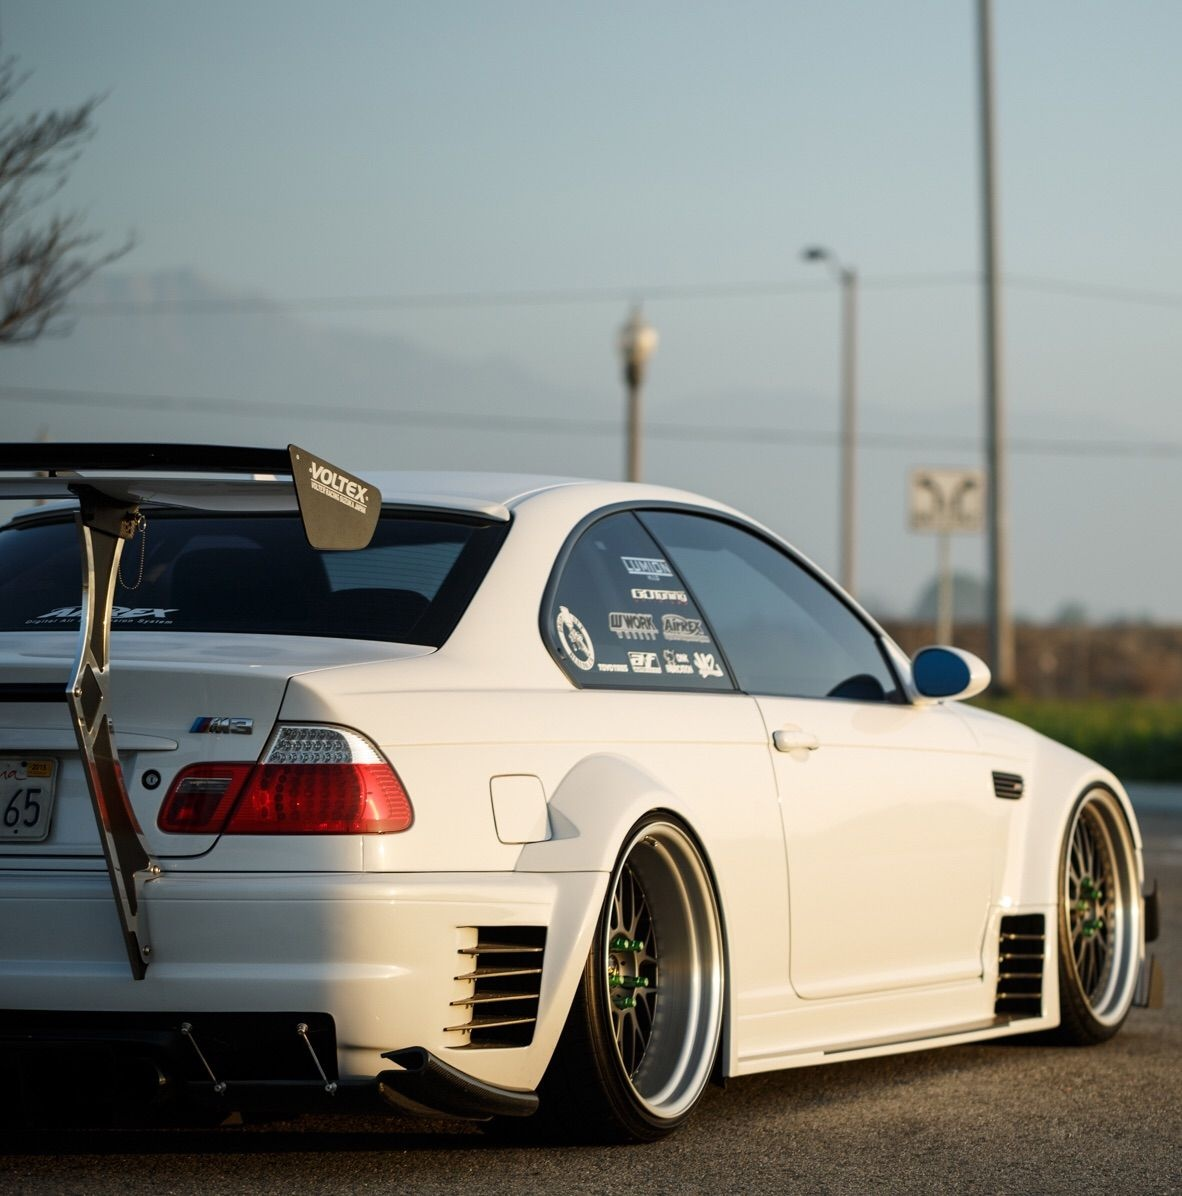 Modified E46 Coupe Beautiful Bmw M3 Widebody Gtbiker Pinterest Bmw M3 Bmw and Cars Of Beautiful Modified E46 Coupe